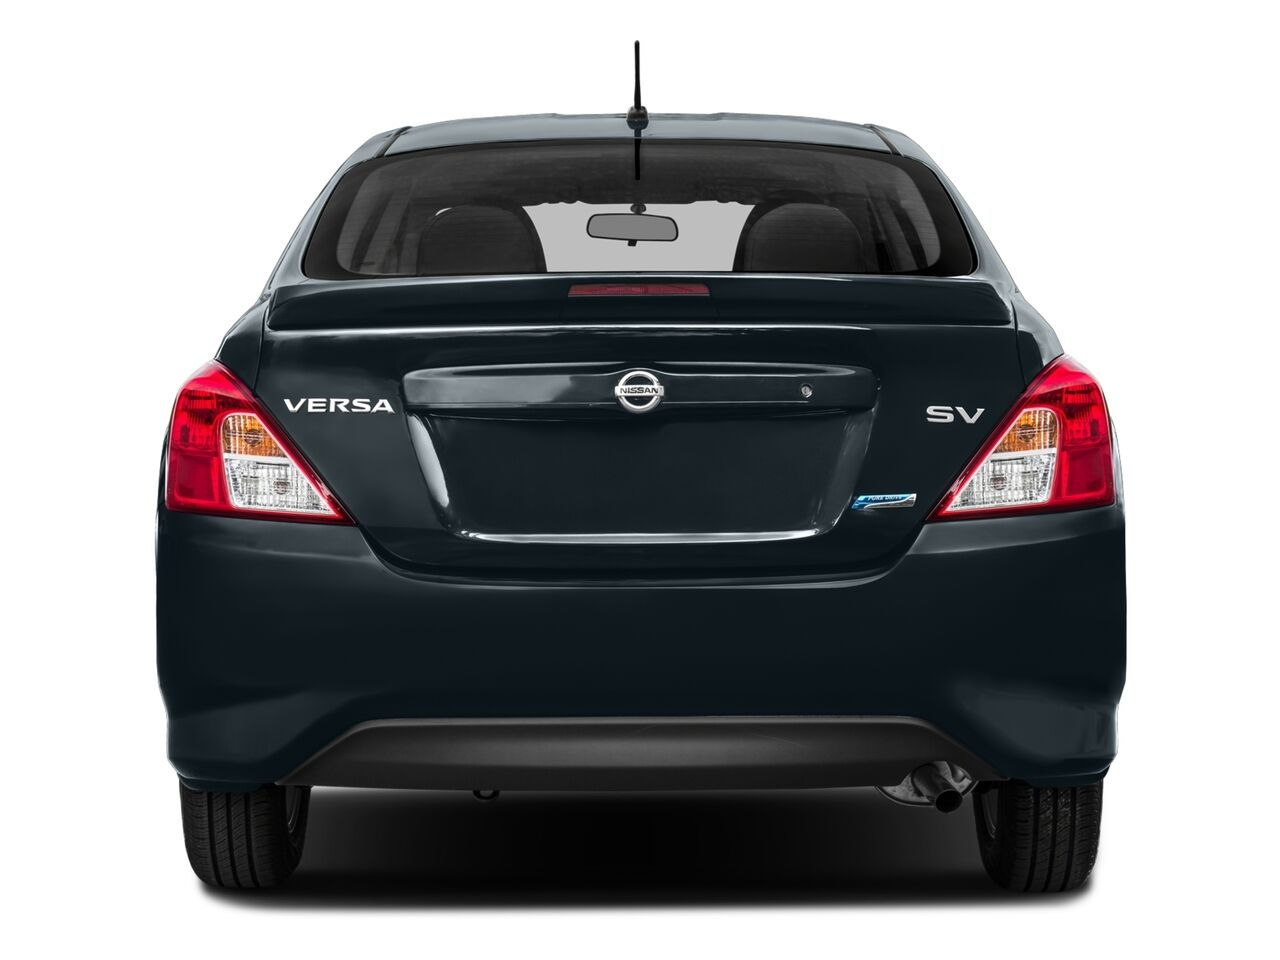 2017 Nissan Versa 1.6 SV Sedan Lee's Summit MO